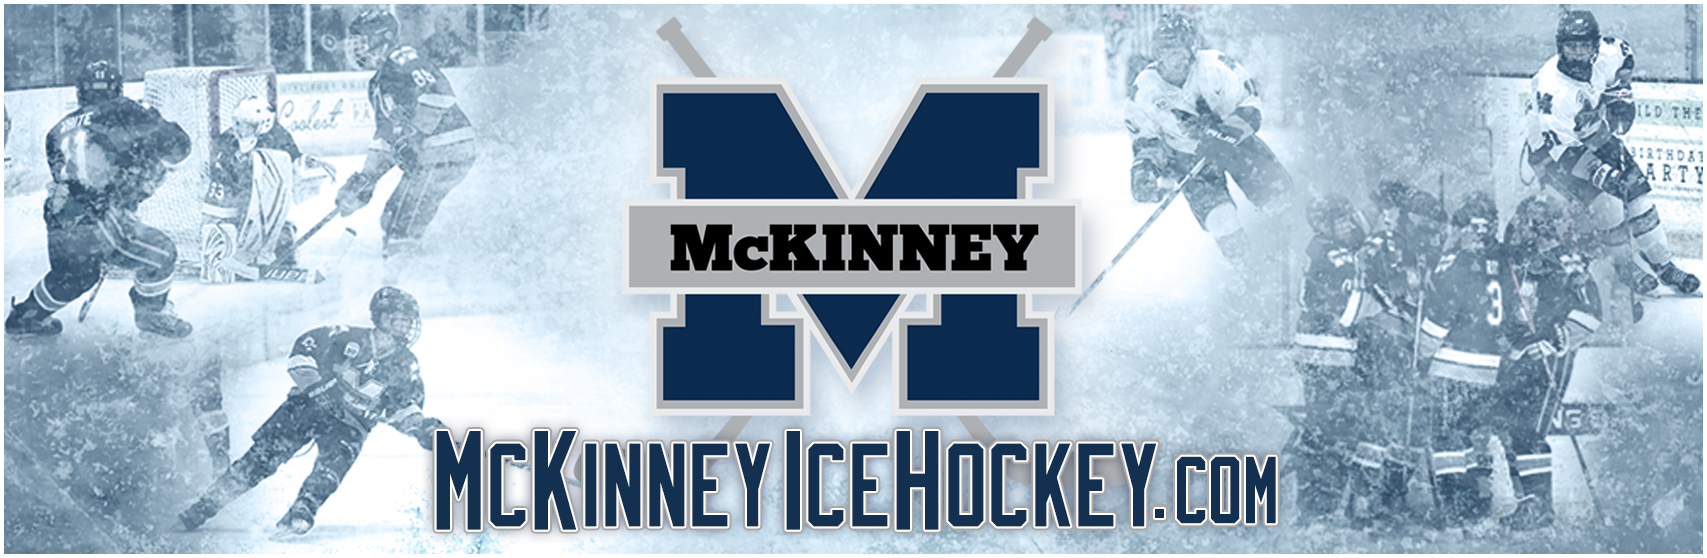 Mckinney header collage v1